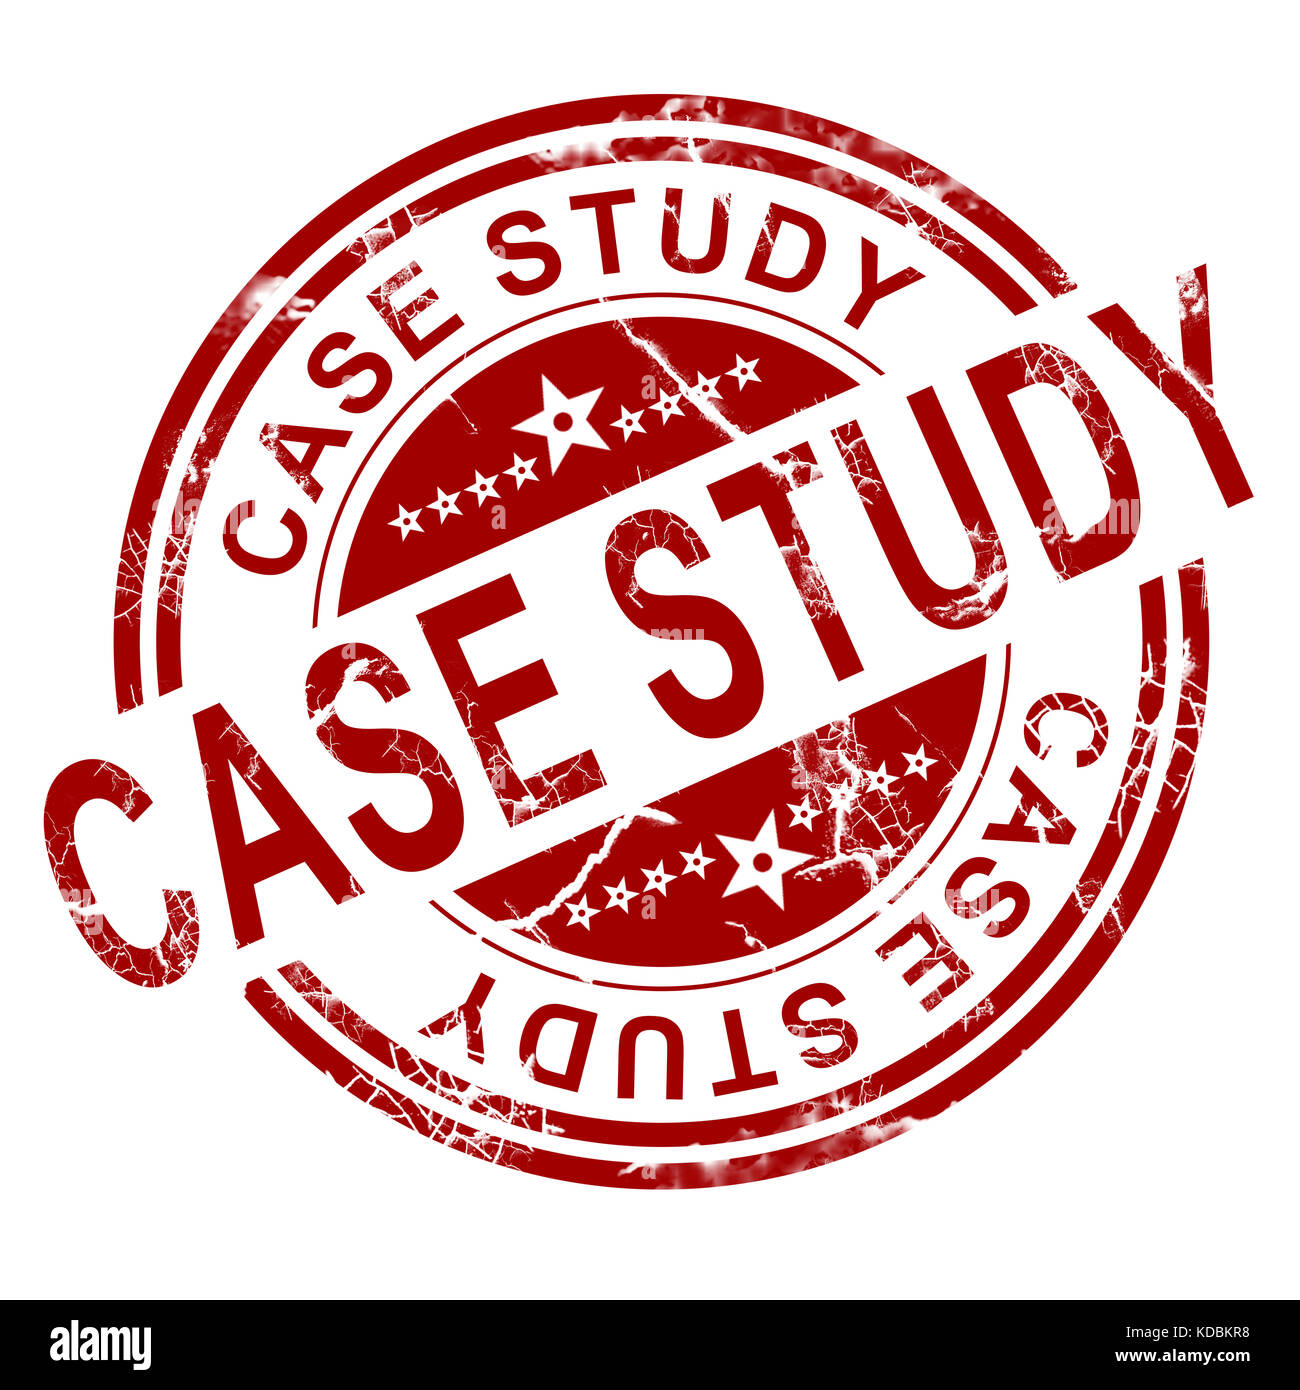 Red case study